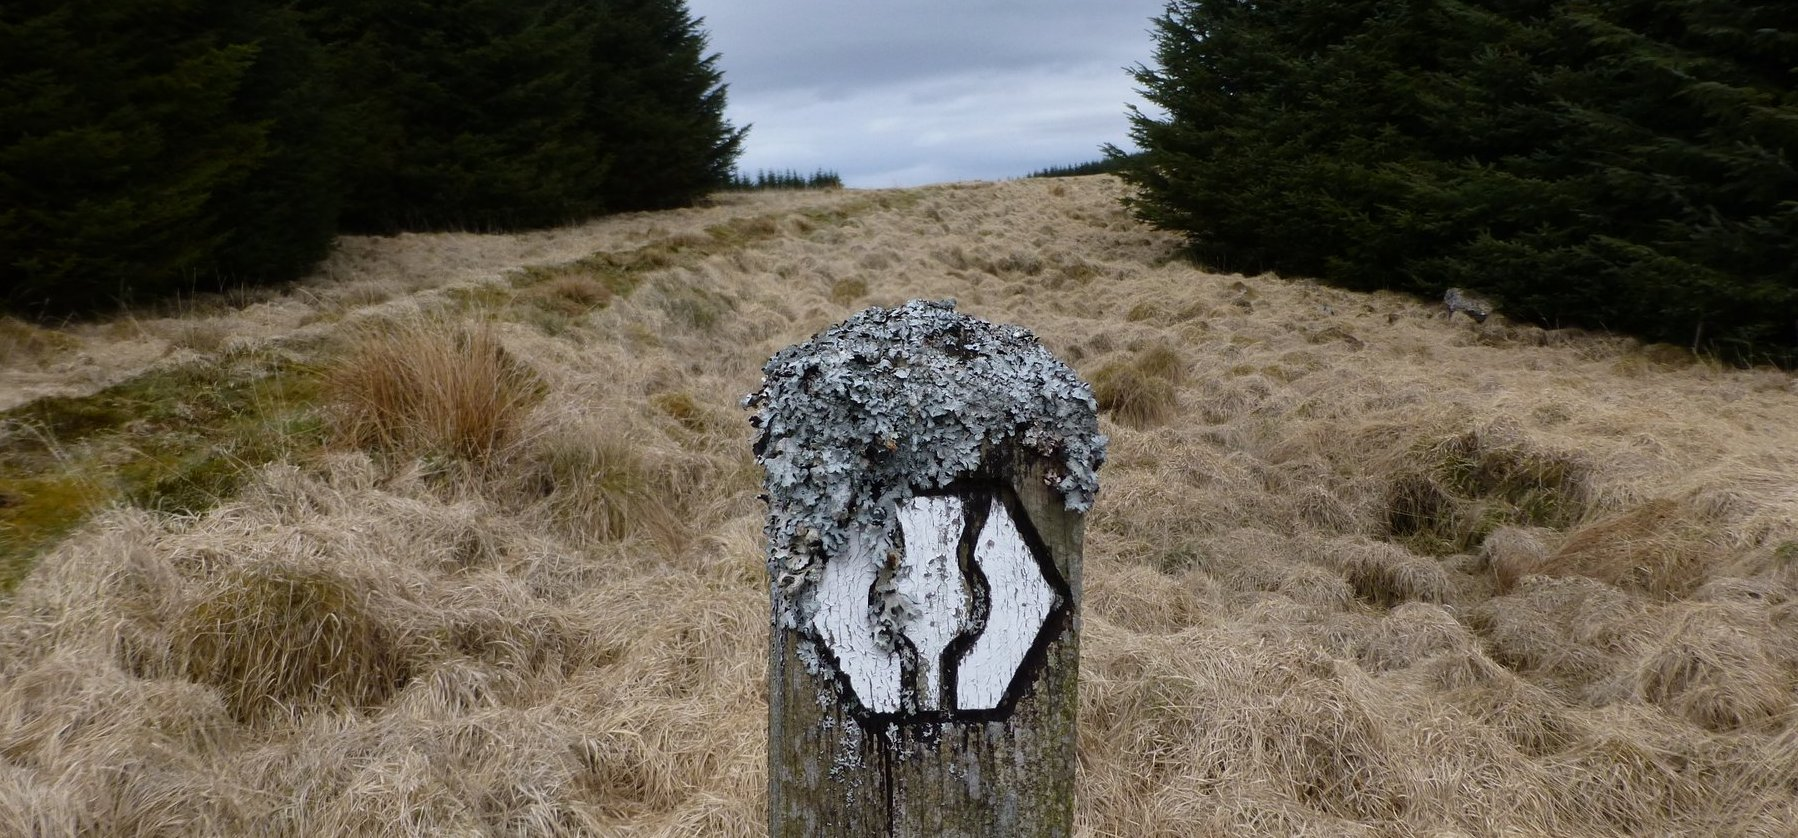 There are some wonderfully crusty old way markers on the SUW